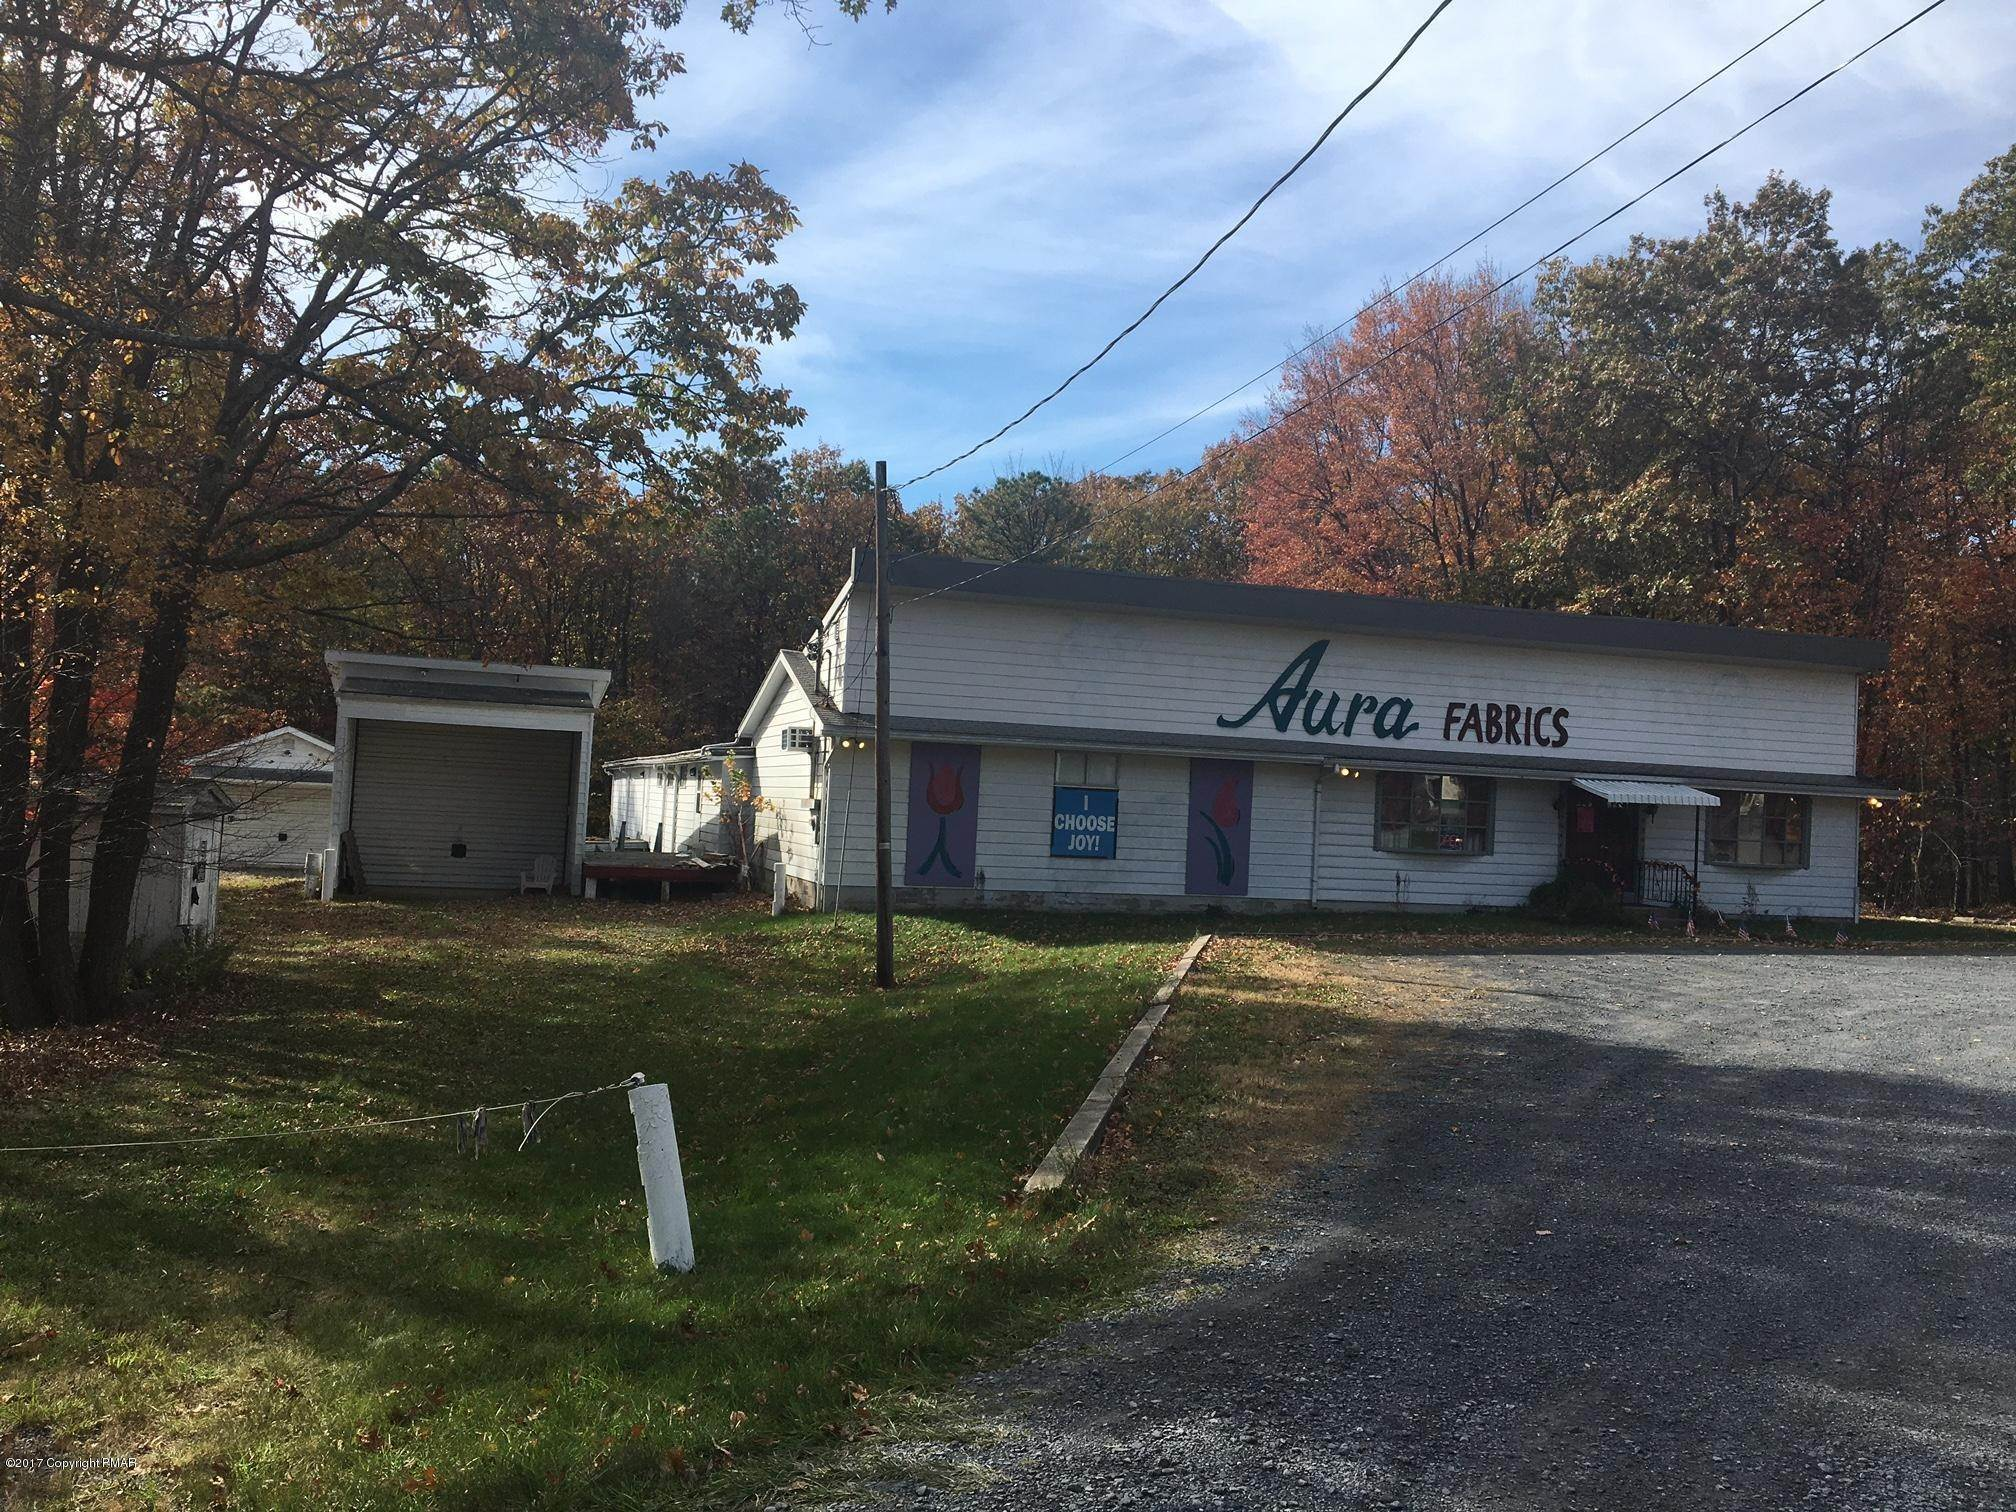 Commercial for Sale at 3275 Pa-115 Effort, Pennsylvania 18330 United States